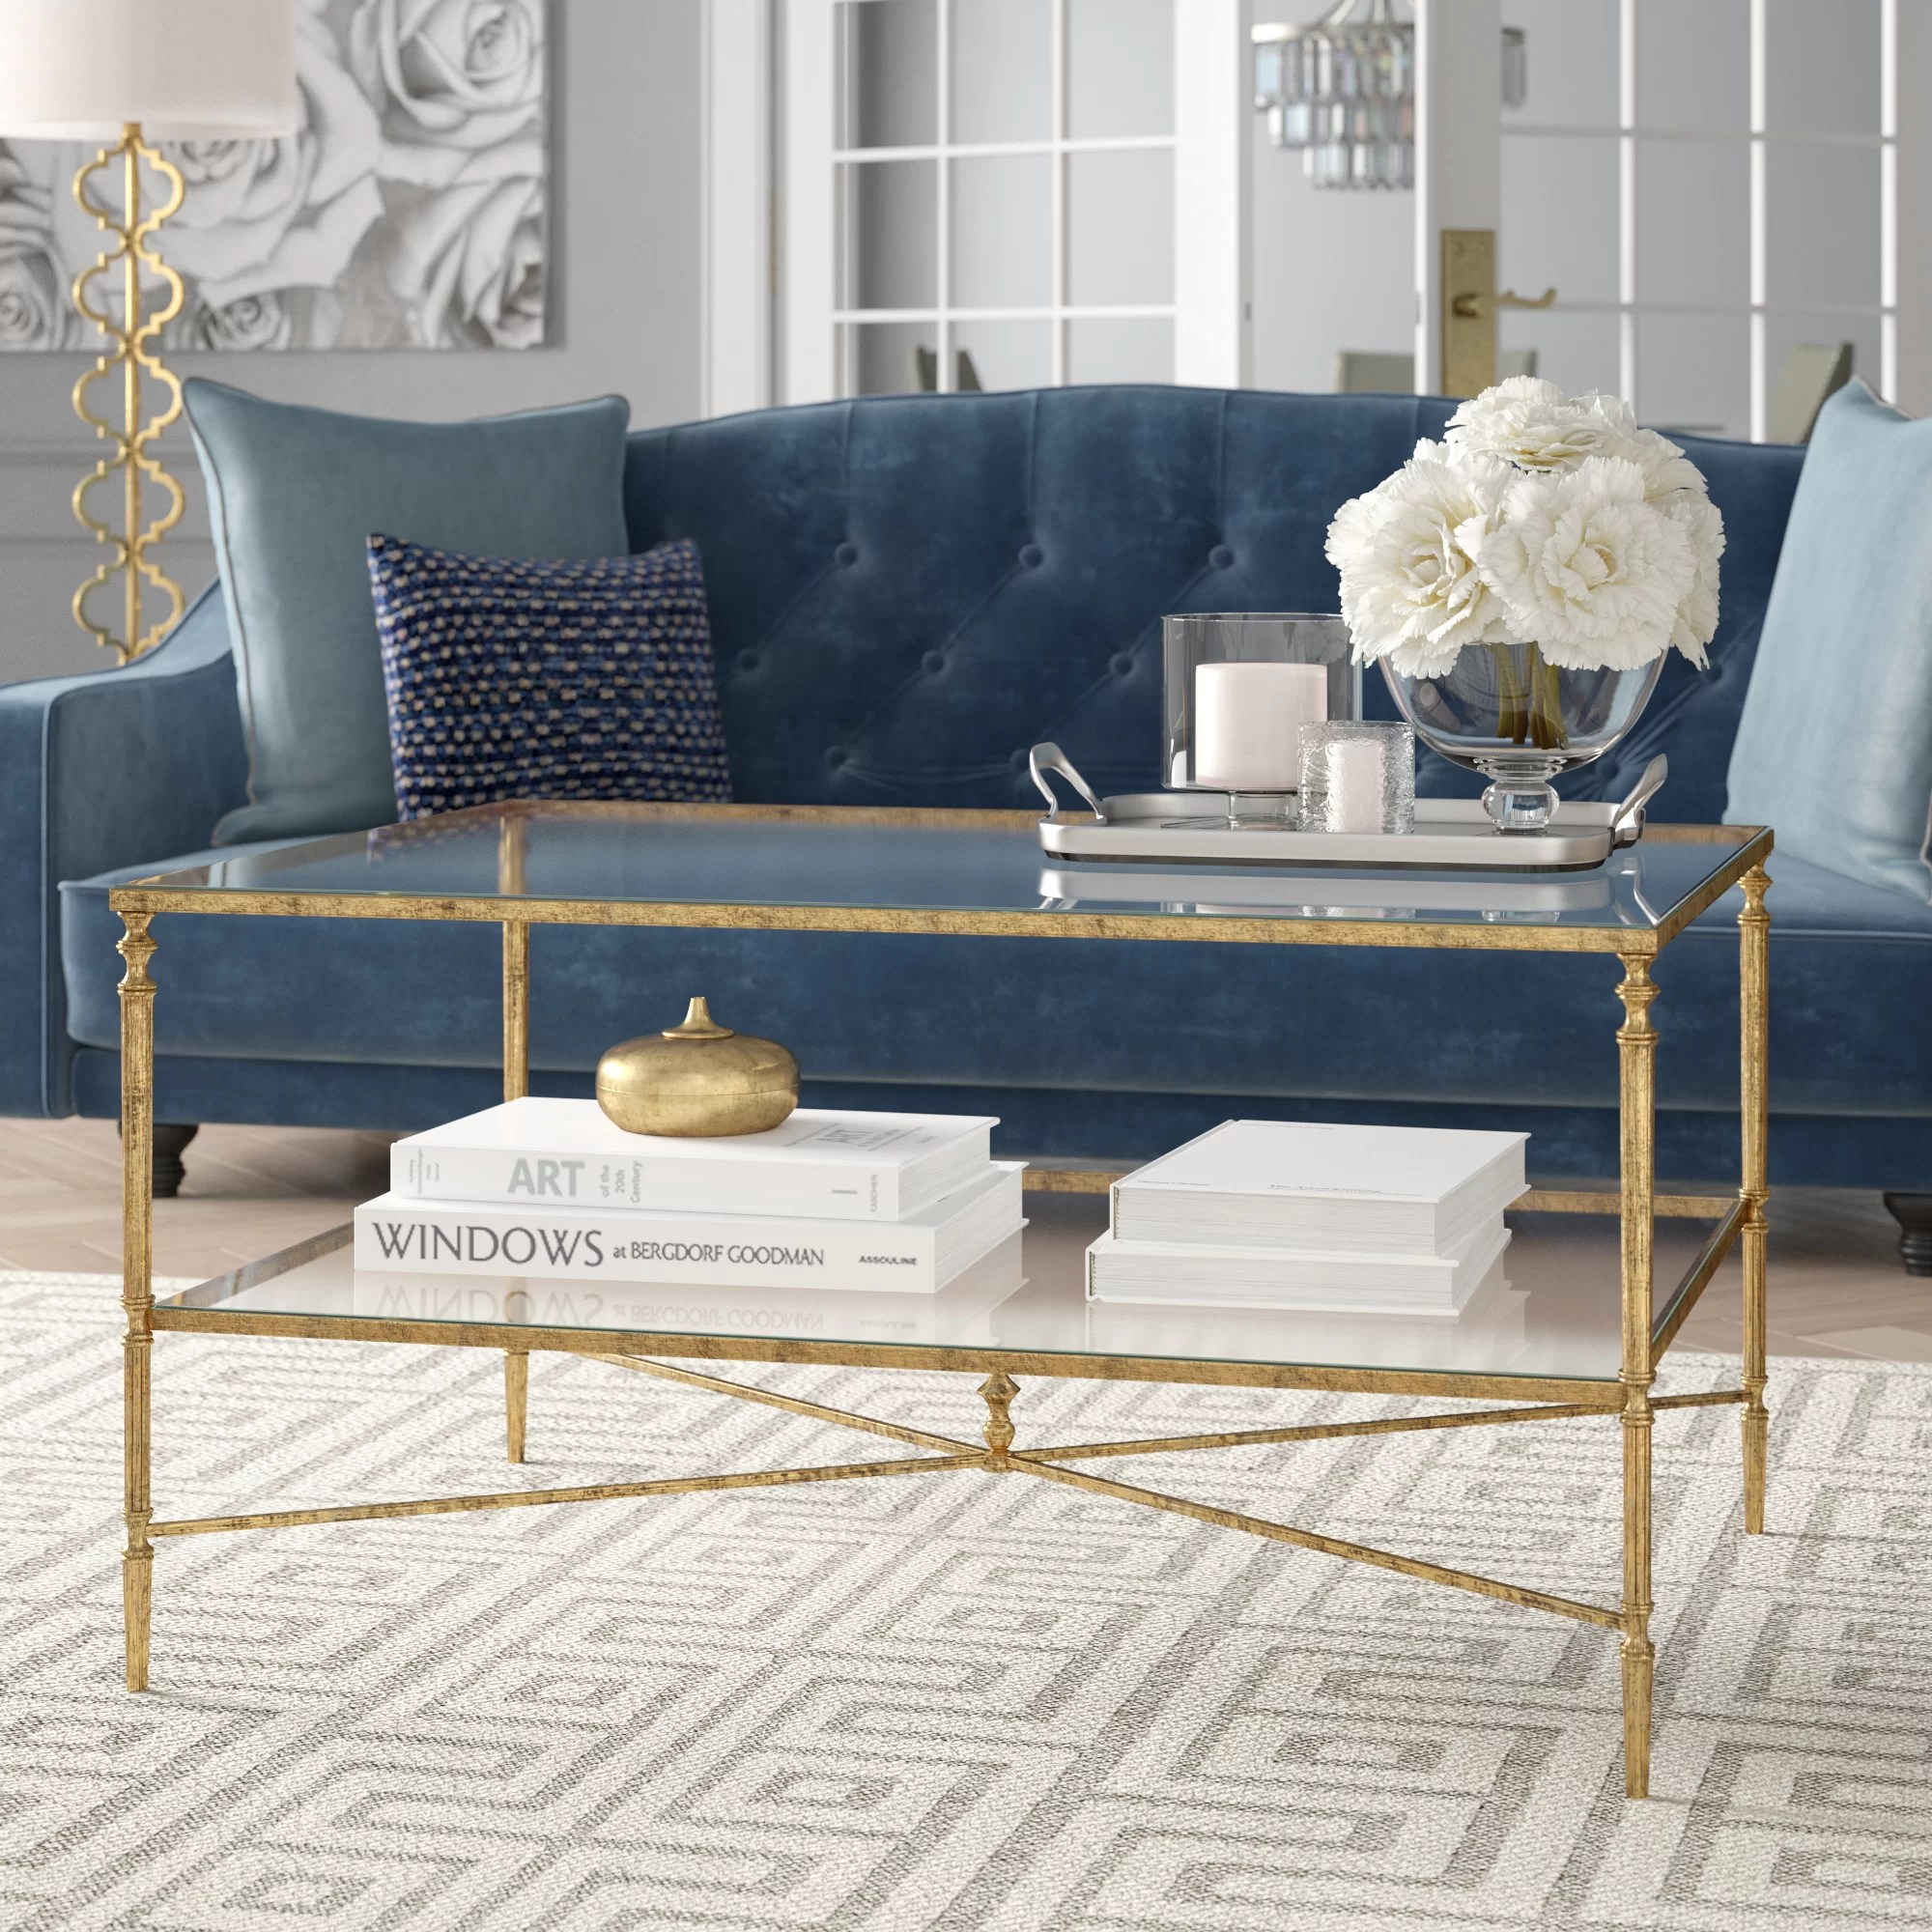 Table Basse Studio Willa Arlo Interiors Caila Coffee Table Reviews Wayfair Ca